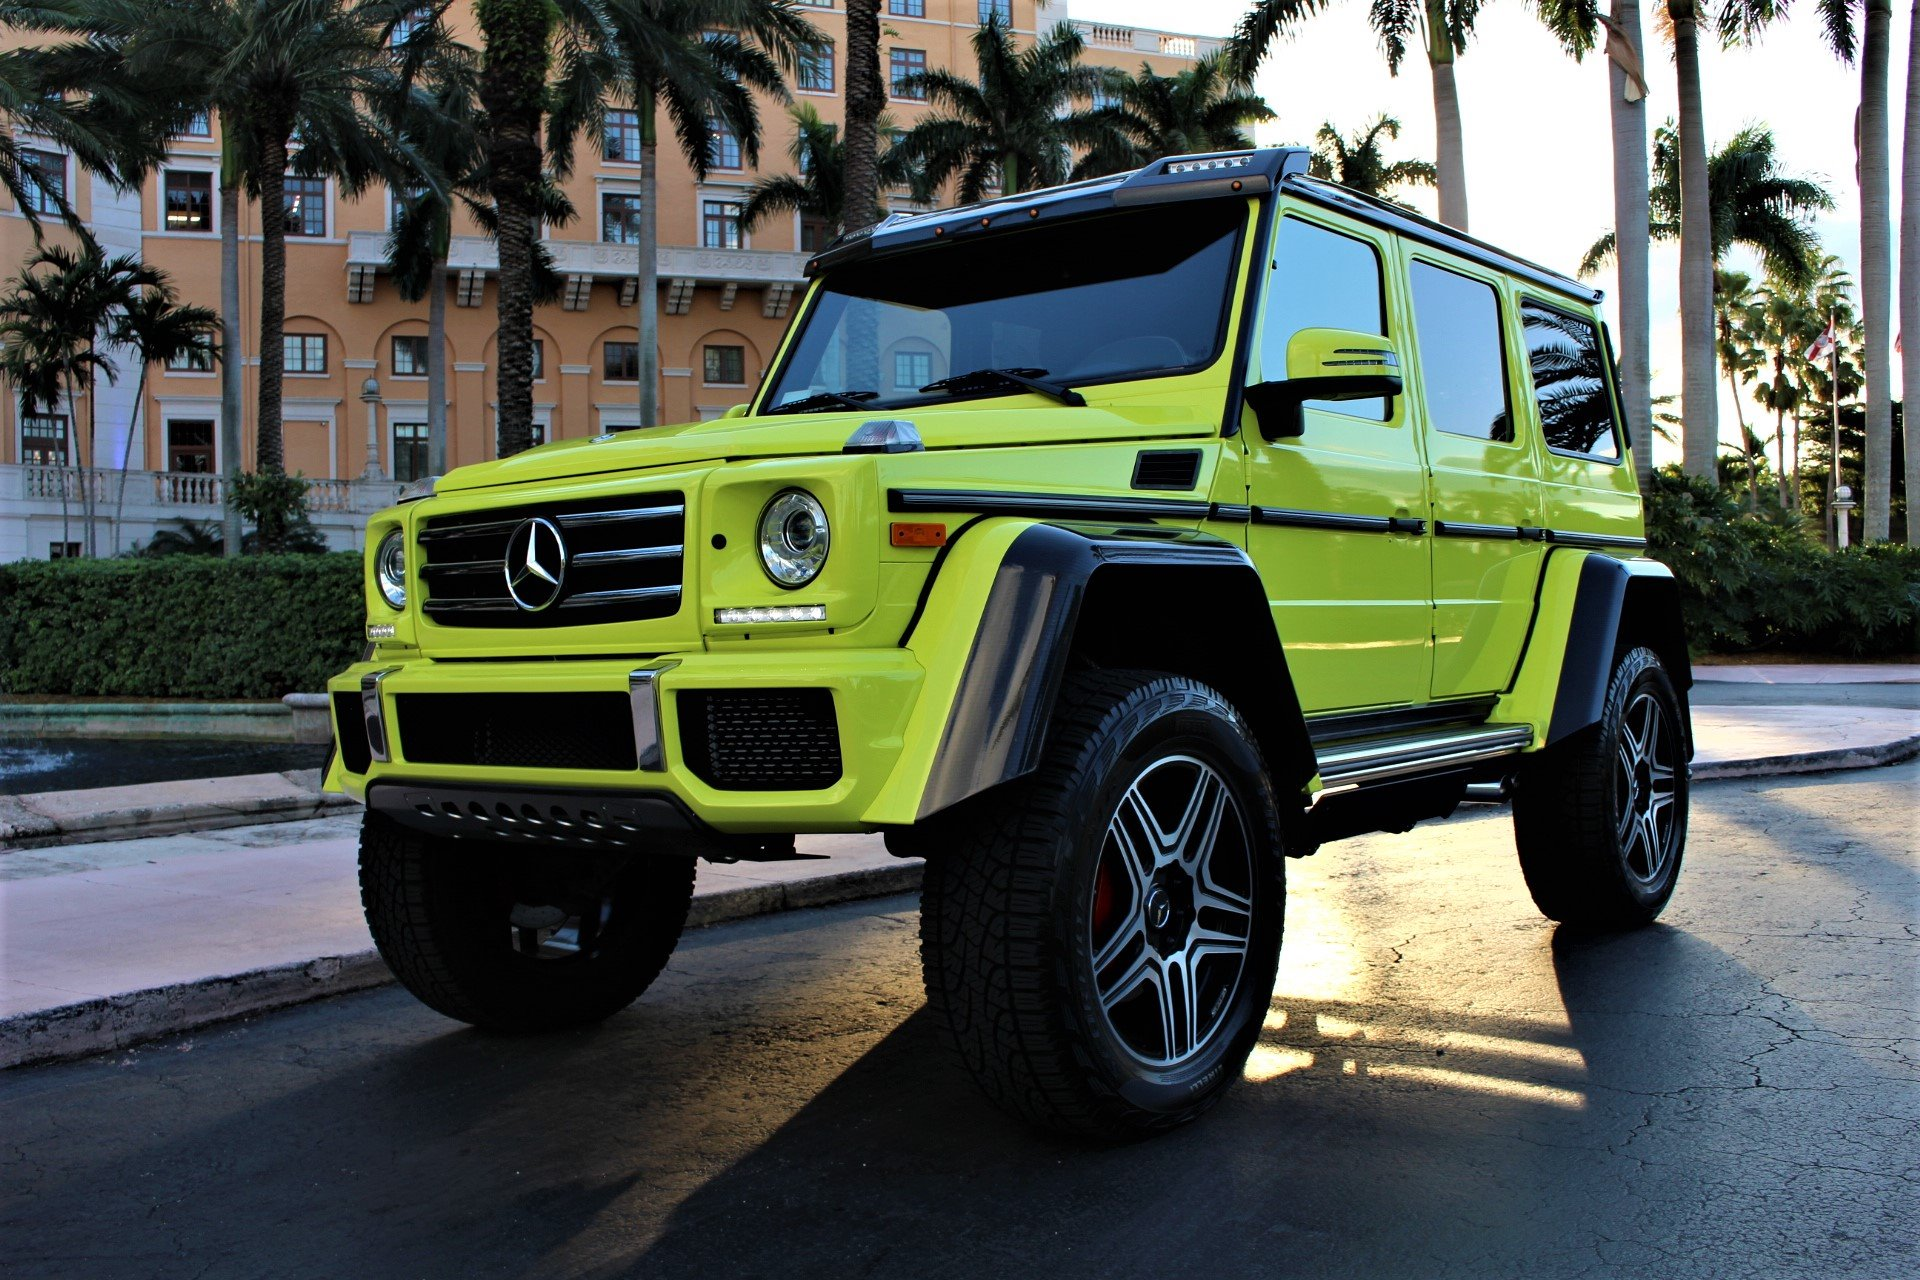 Used 2017 Mercedes-Benz G-Class G 550 4x4 Squared for sale $199,850 at The Gables Sports Cars in Miami FL 33146 4